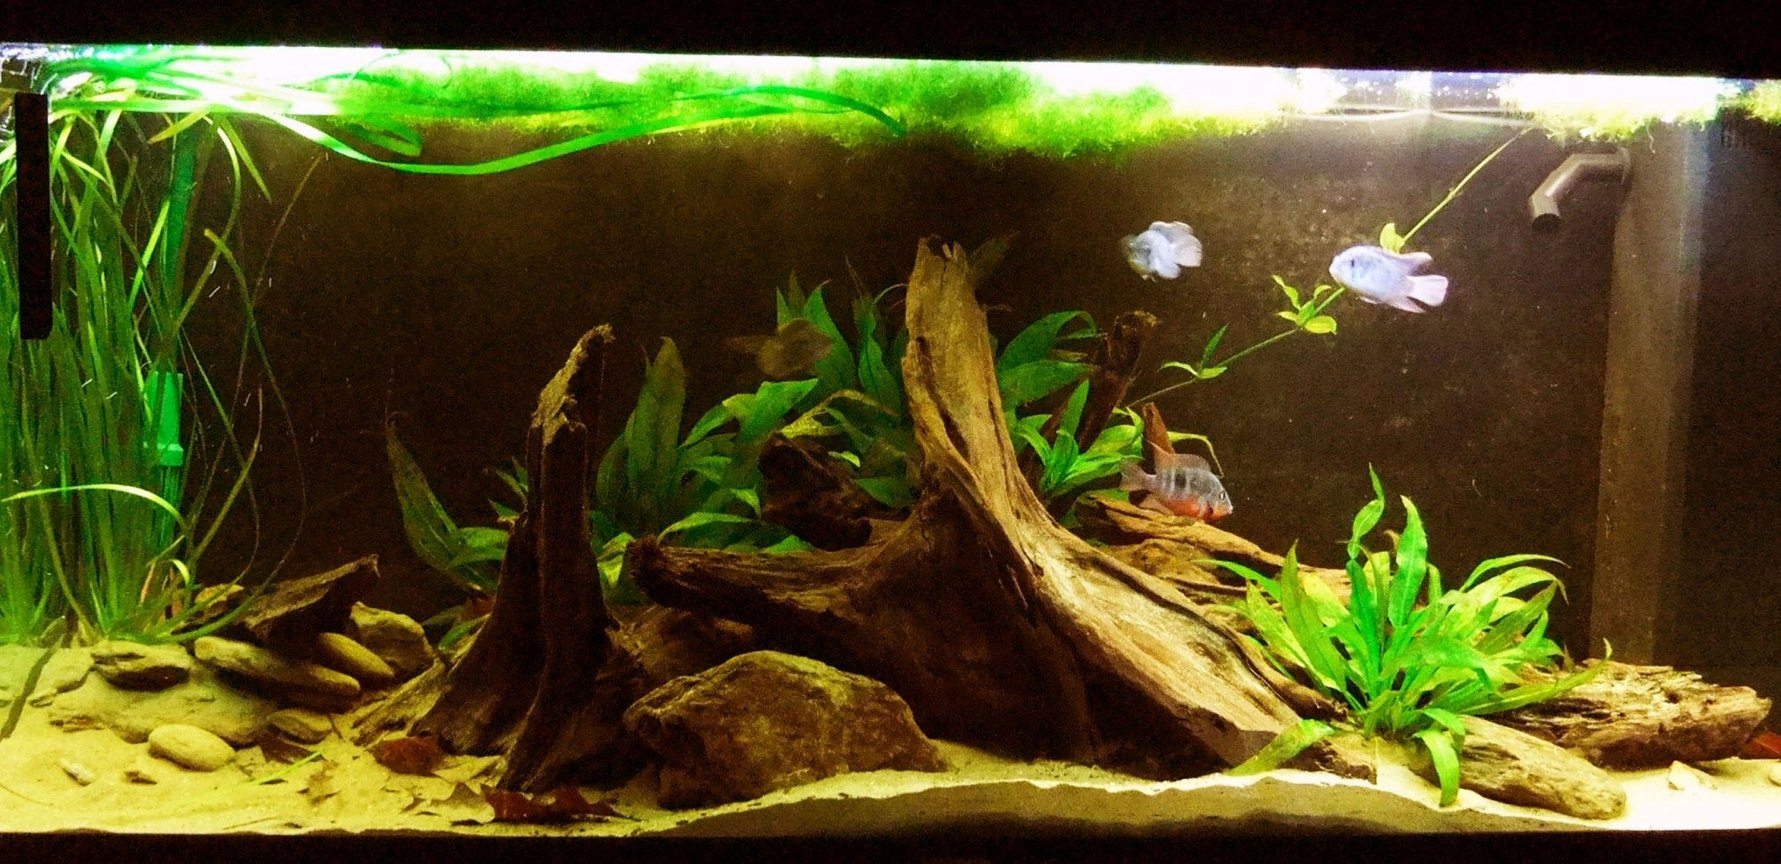 55 gallons freshwater fish tank (mostly fish and non-living decorations) - My South American themeed Cichlid tank I have: 3 blue acara 2 Firemouth (pair) 2 Black Ghost Knifefish 1 Royal L190 Panaque